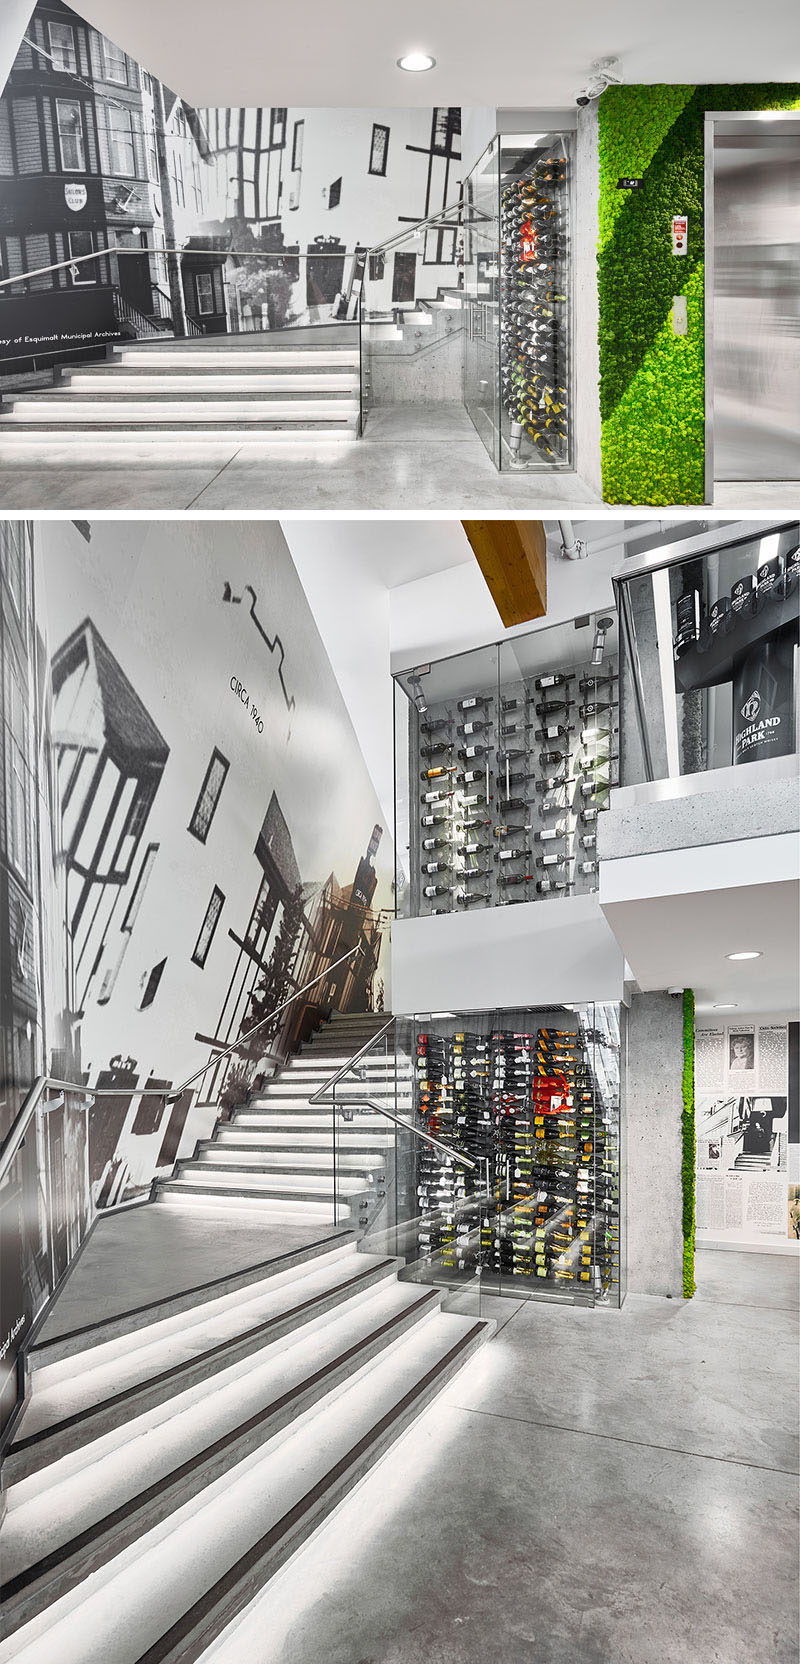 Feature stairs at the rear of this modern liquor store lead up to a mezzanine, and a conditioned wine display, both wrap around the elevator core. #Stairs #WineDisplay #RetailDesign